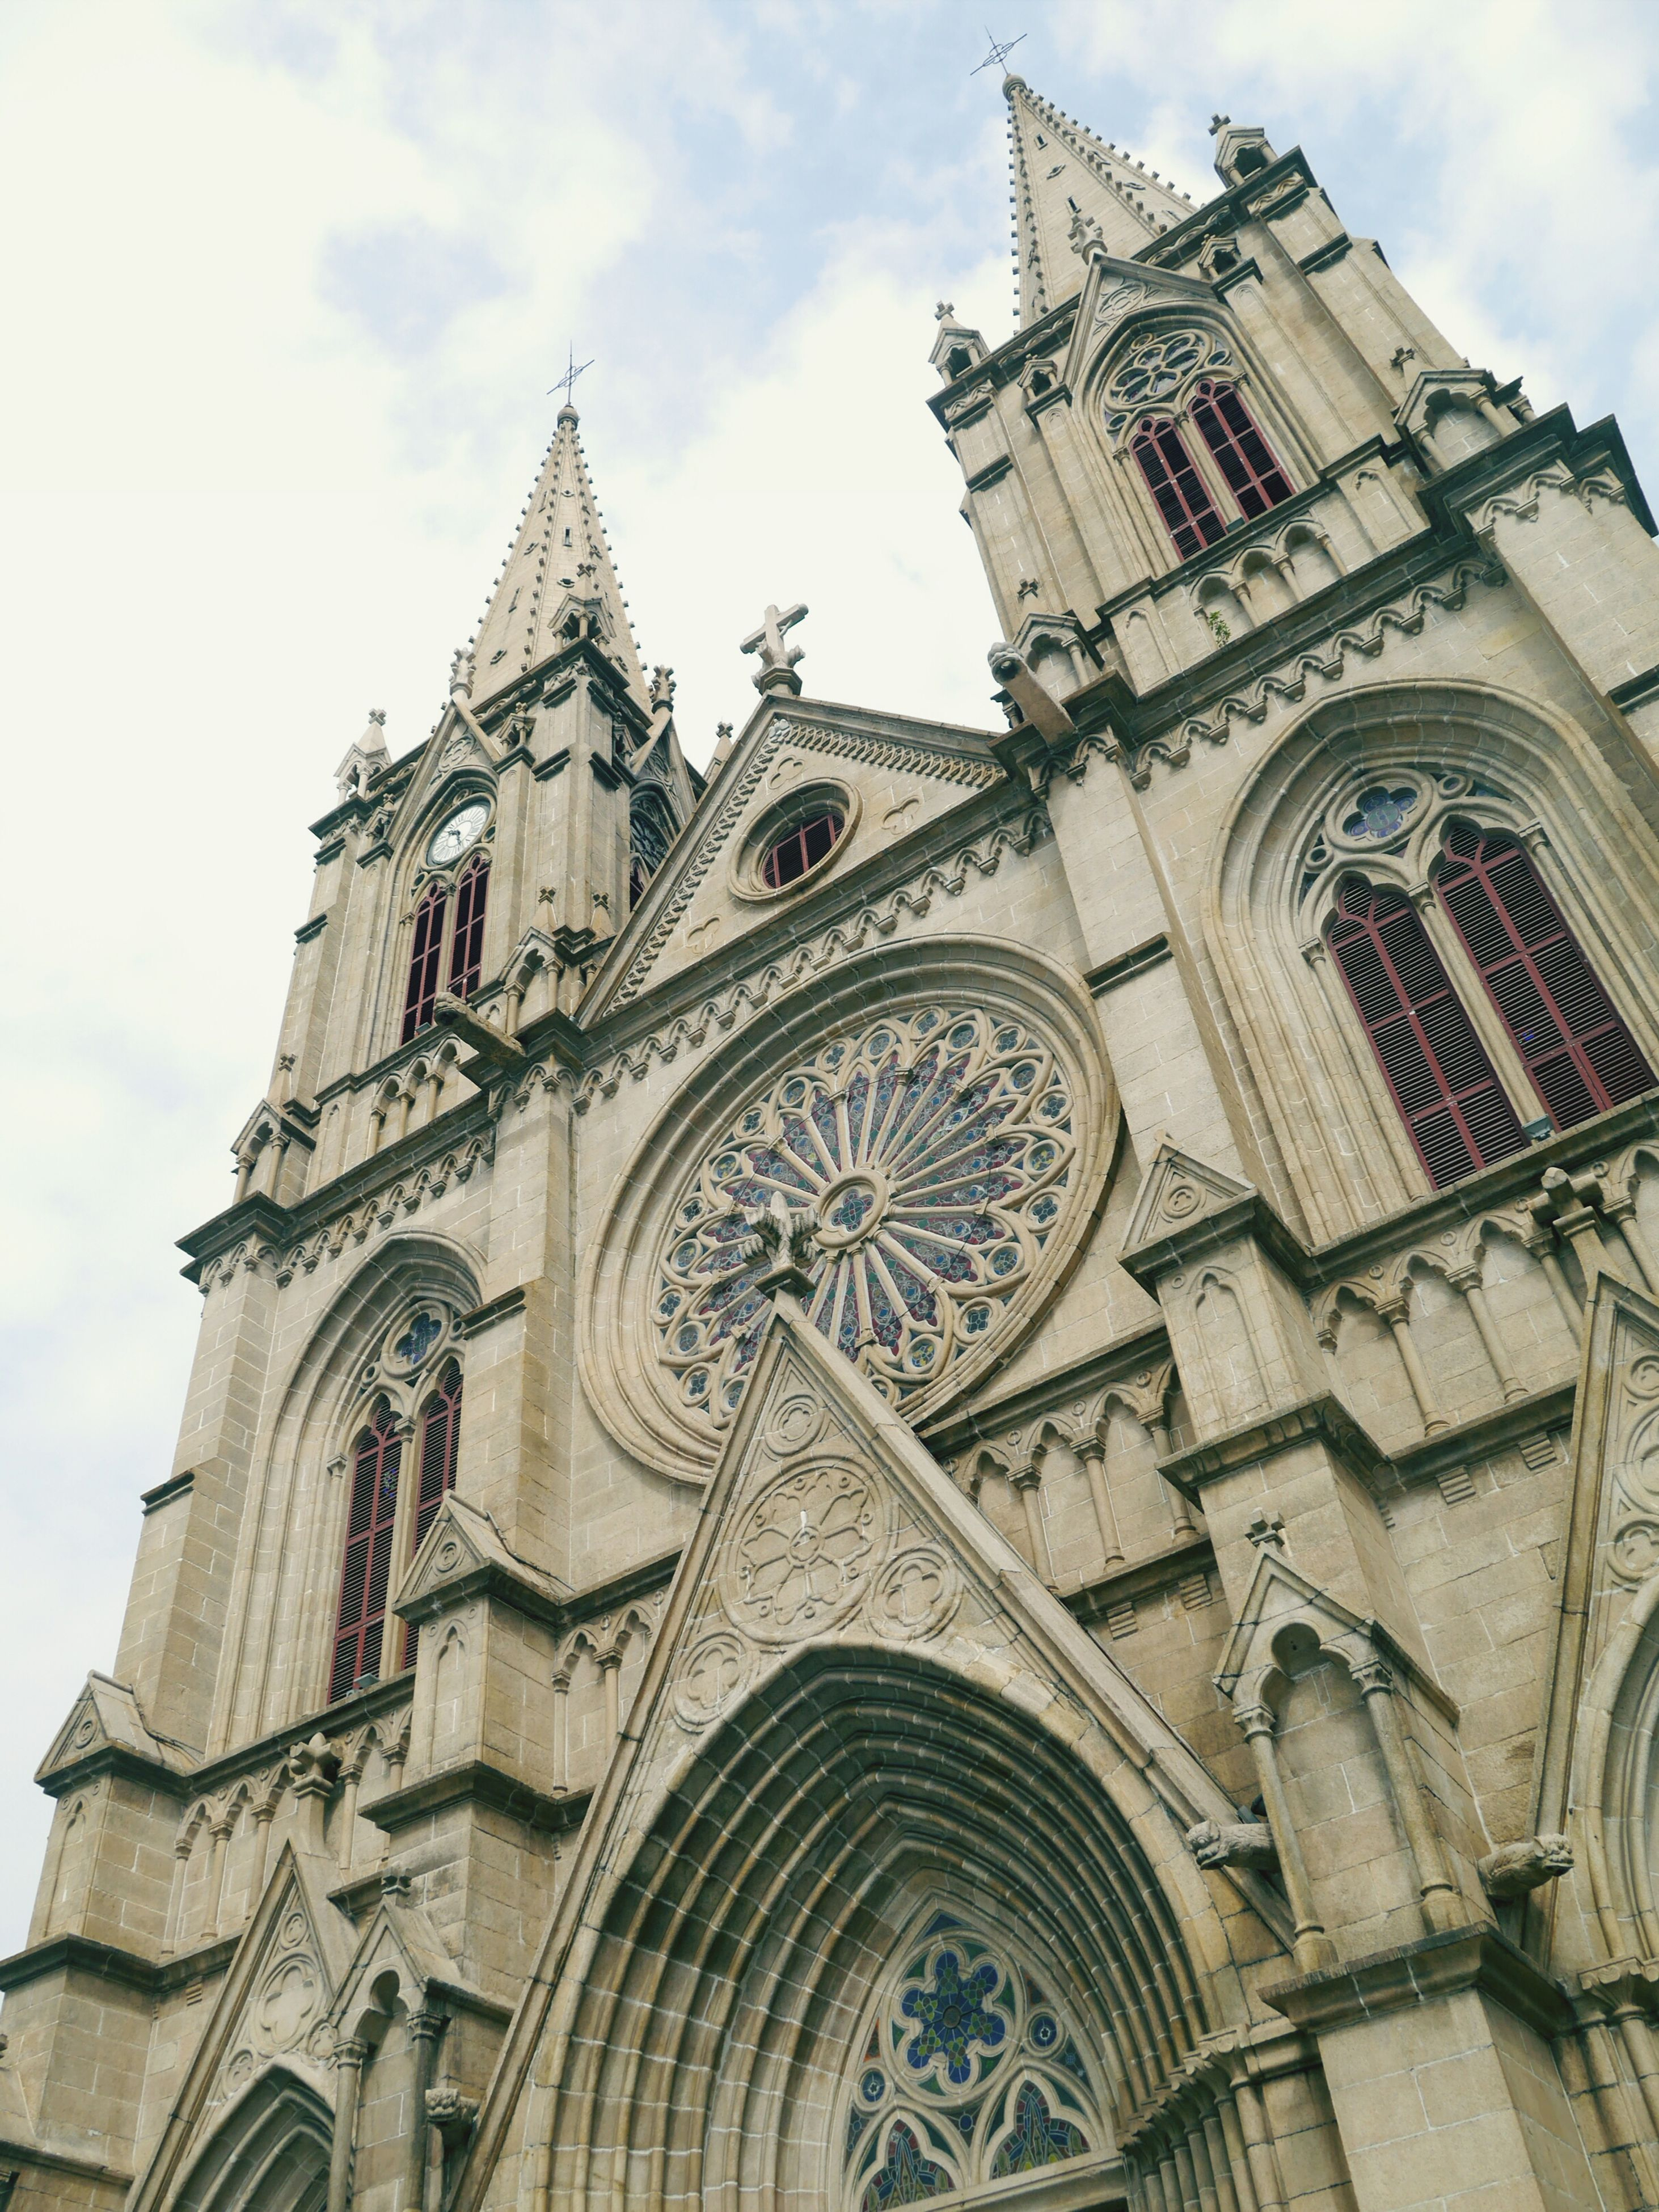 architecture, low angle view, building exterior, built structure, place of worship, religion, church, spirituality, cathedral, sky, famous place, travel destinations, history, travel, tourism, tower, capital cities, international landmark